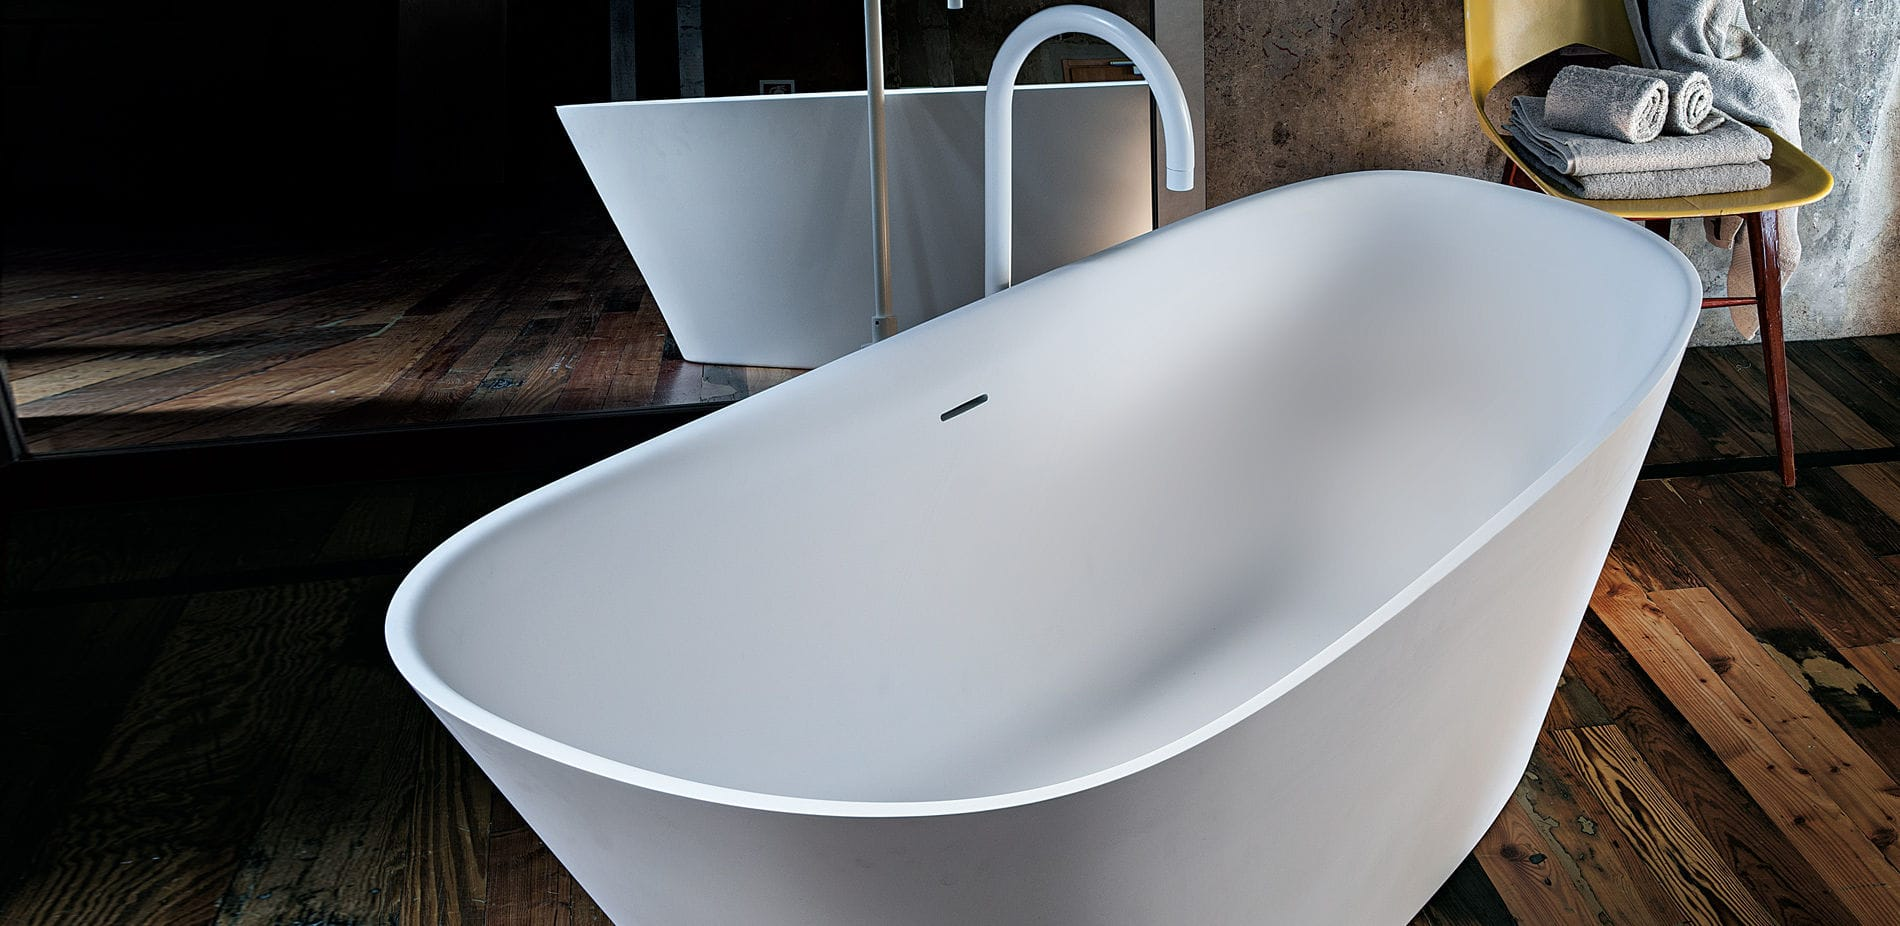 Freestanding bathtub / oval / composite - LEVEL 45 - WA3 by Naghi ...